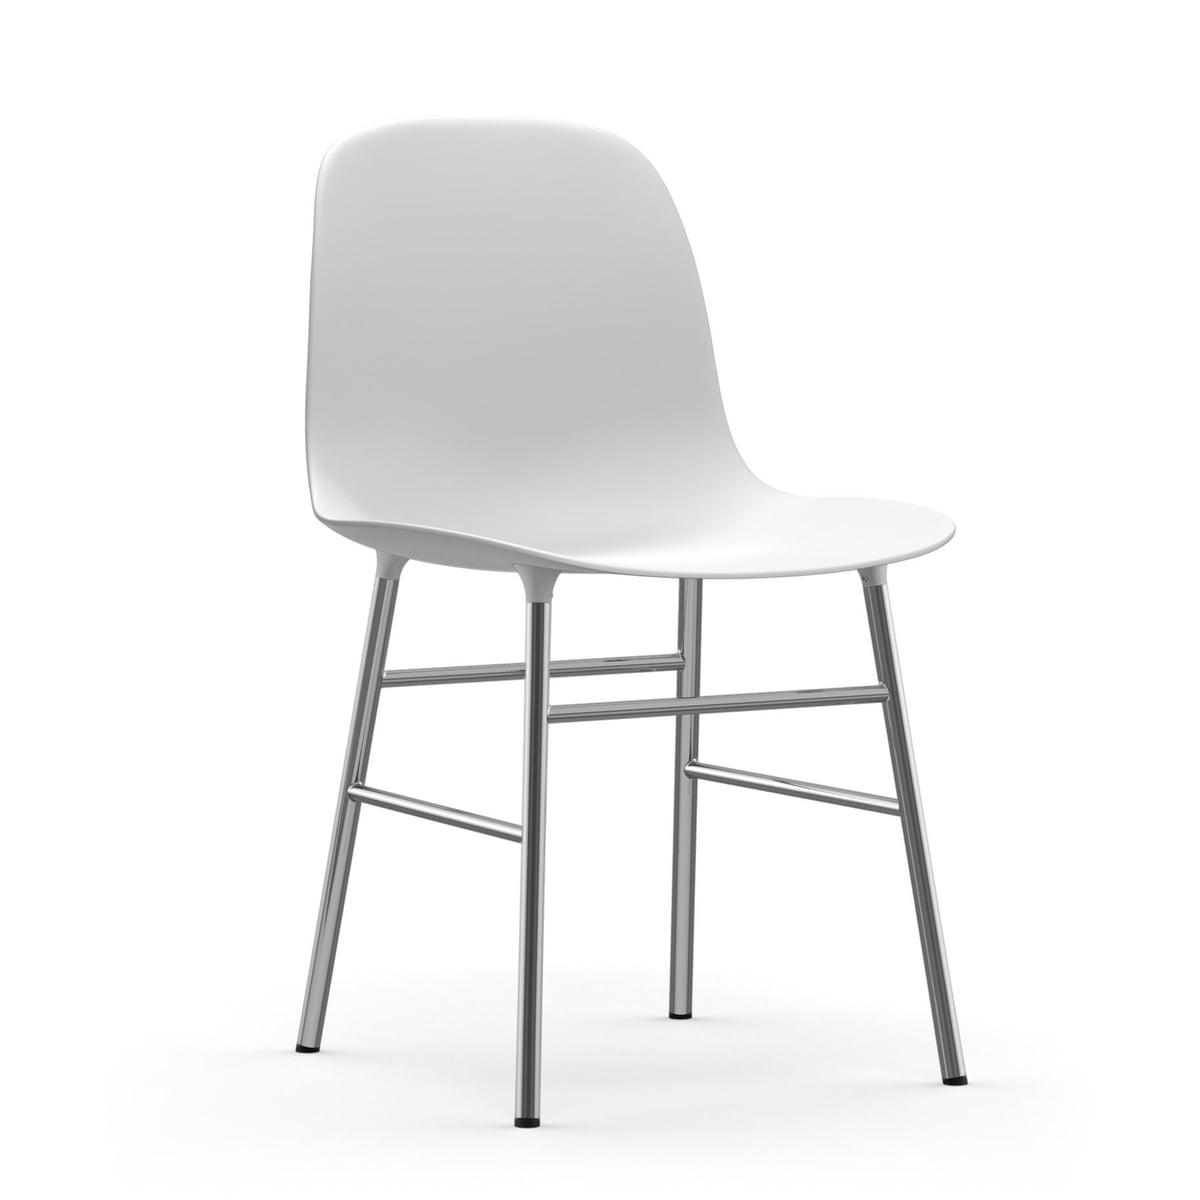 Form chair chrom von normann copenhagen for Barhocker normann copenhagen